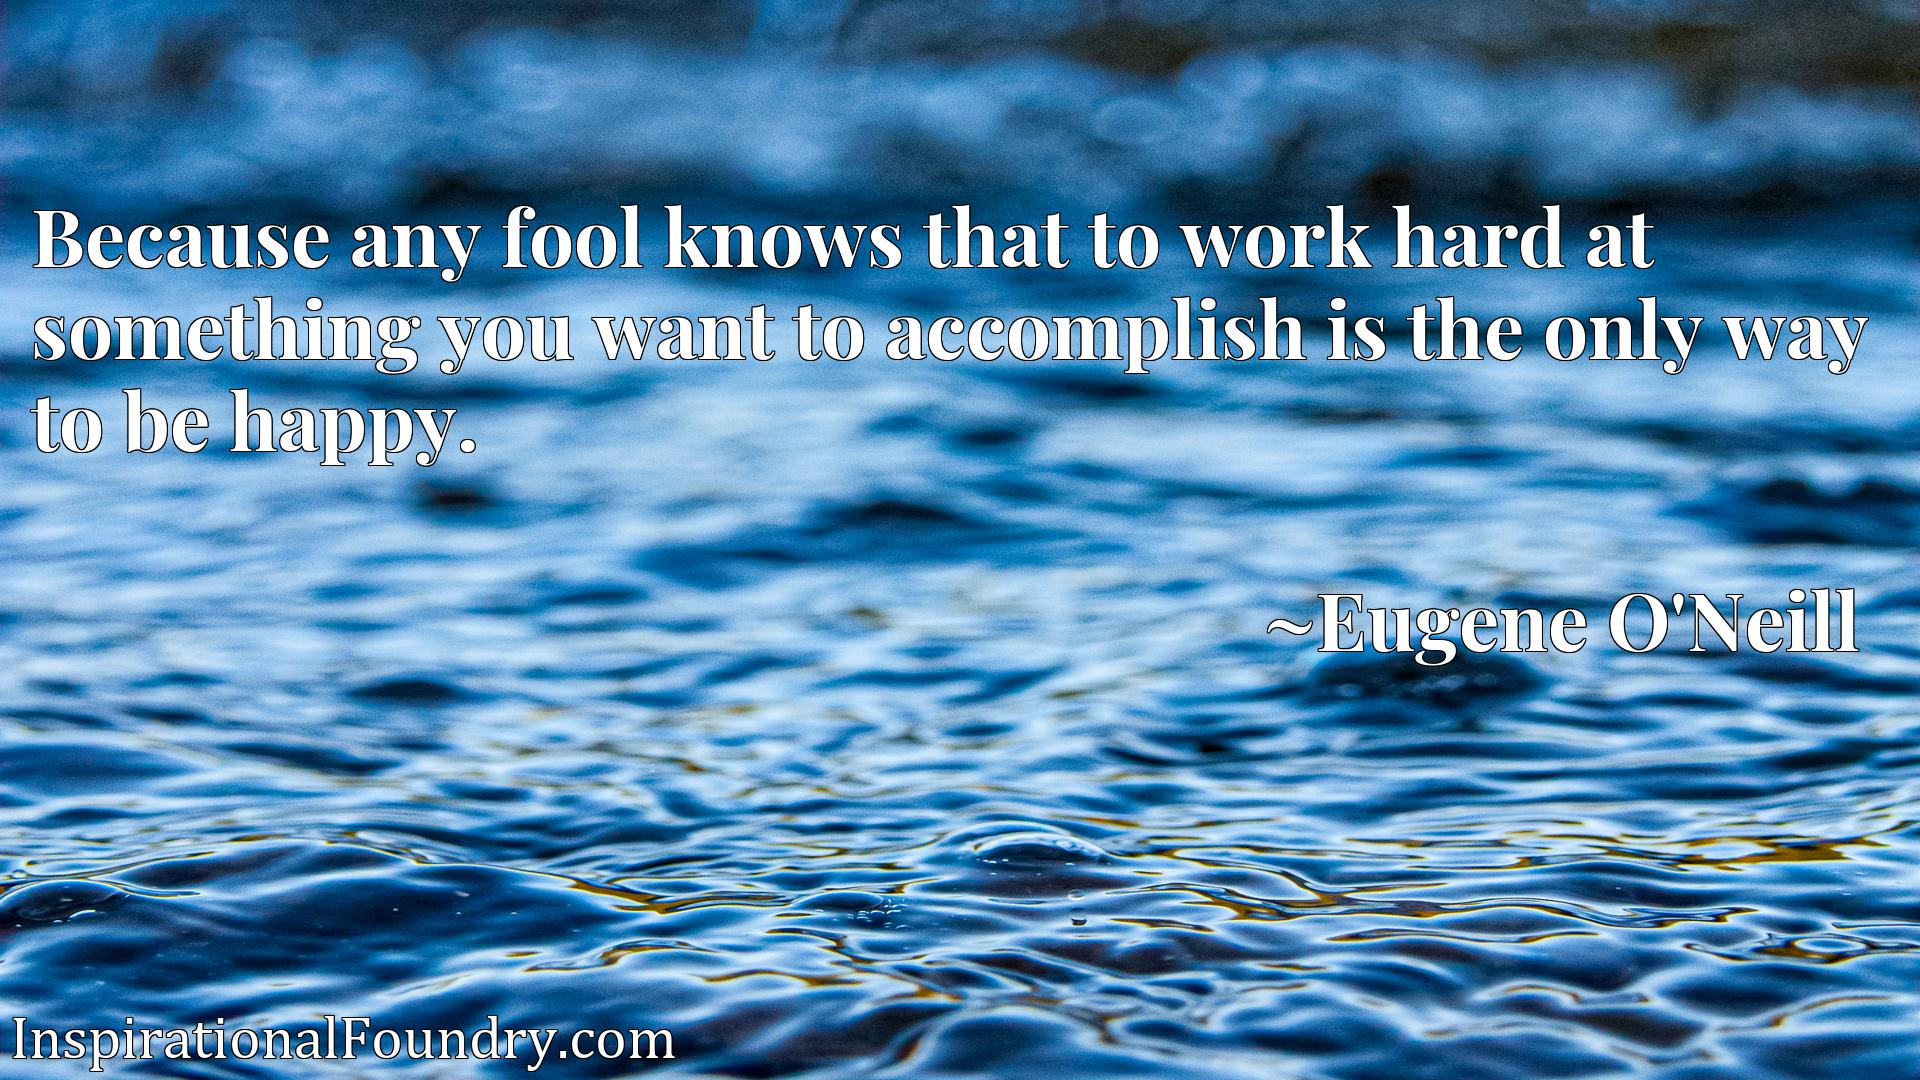 Quote Picture :Because any fool knows that to work hard at something you want to accomplish is the only way to be happy.